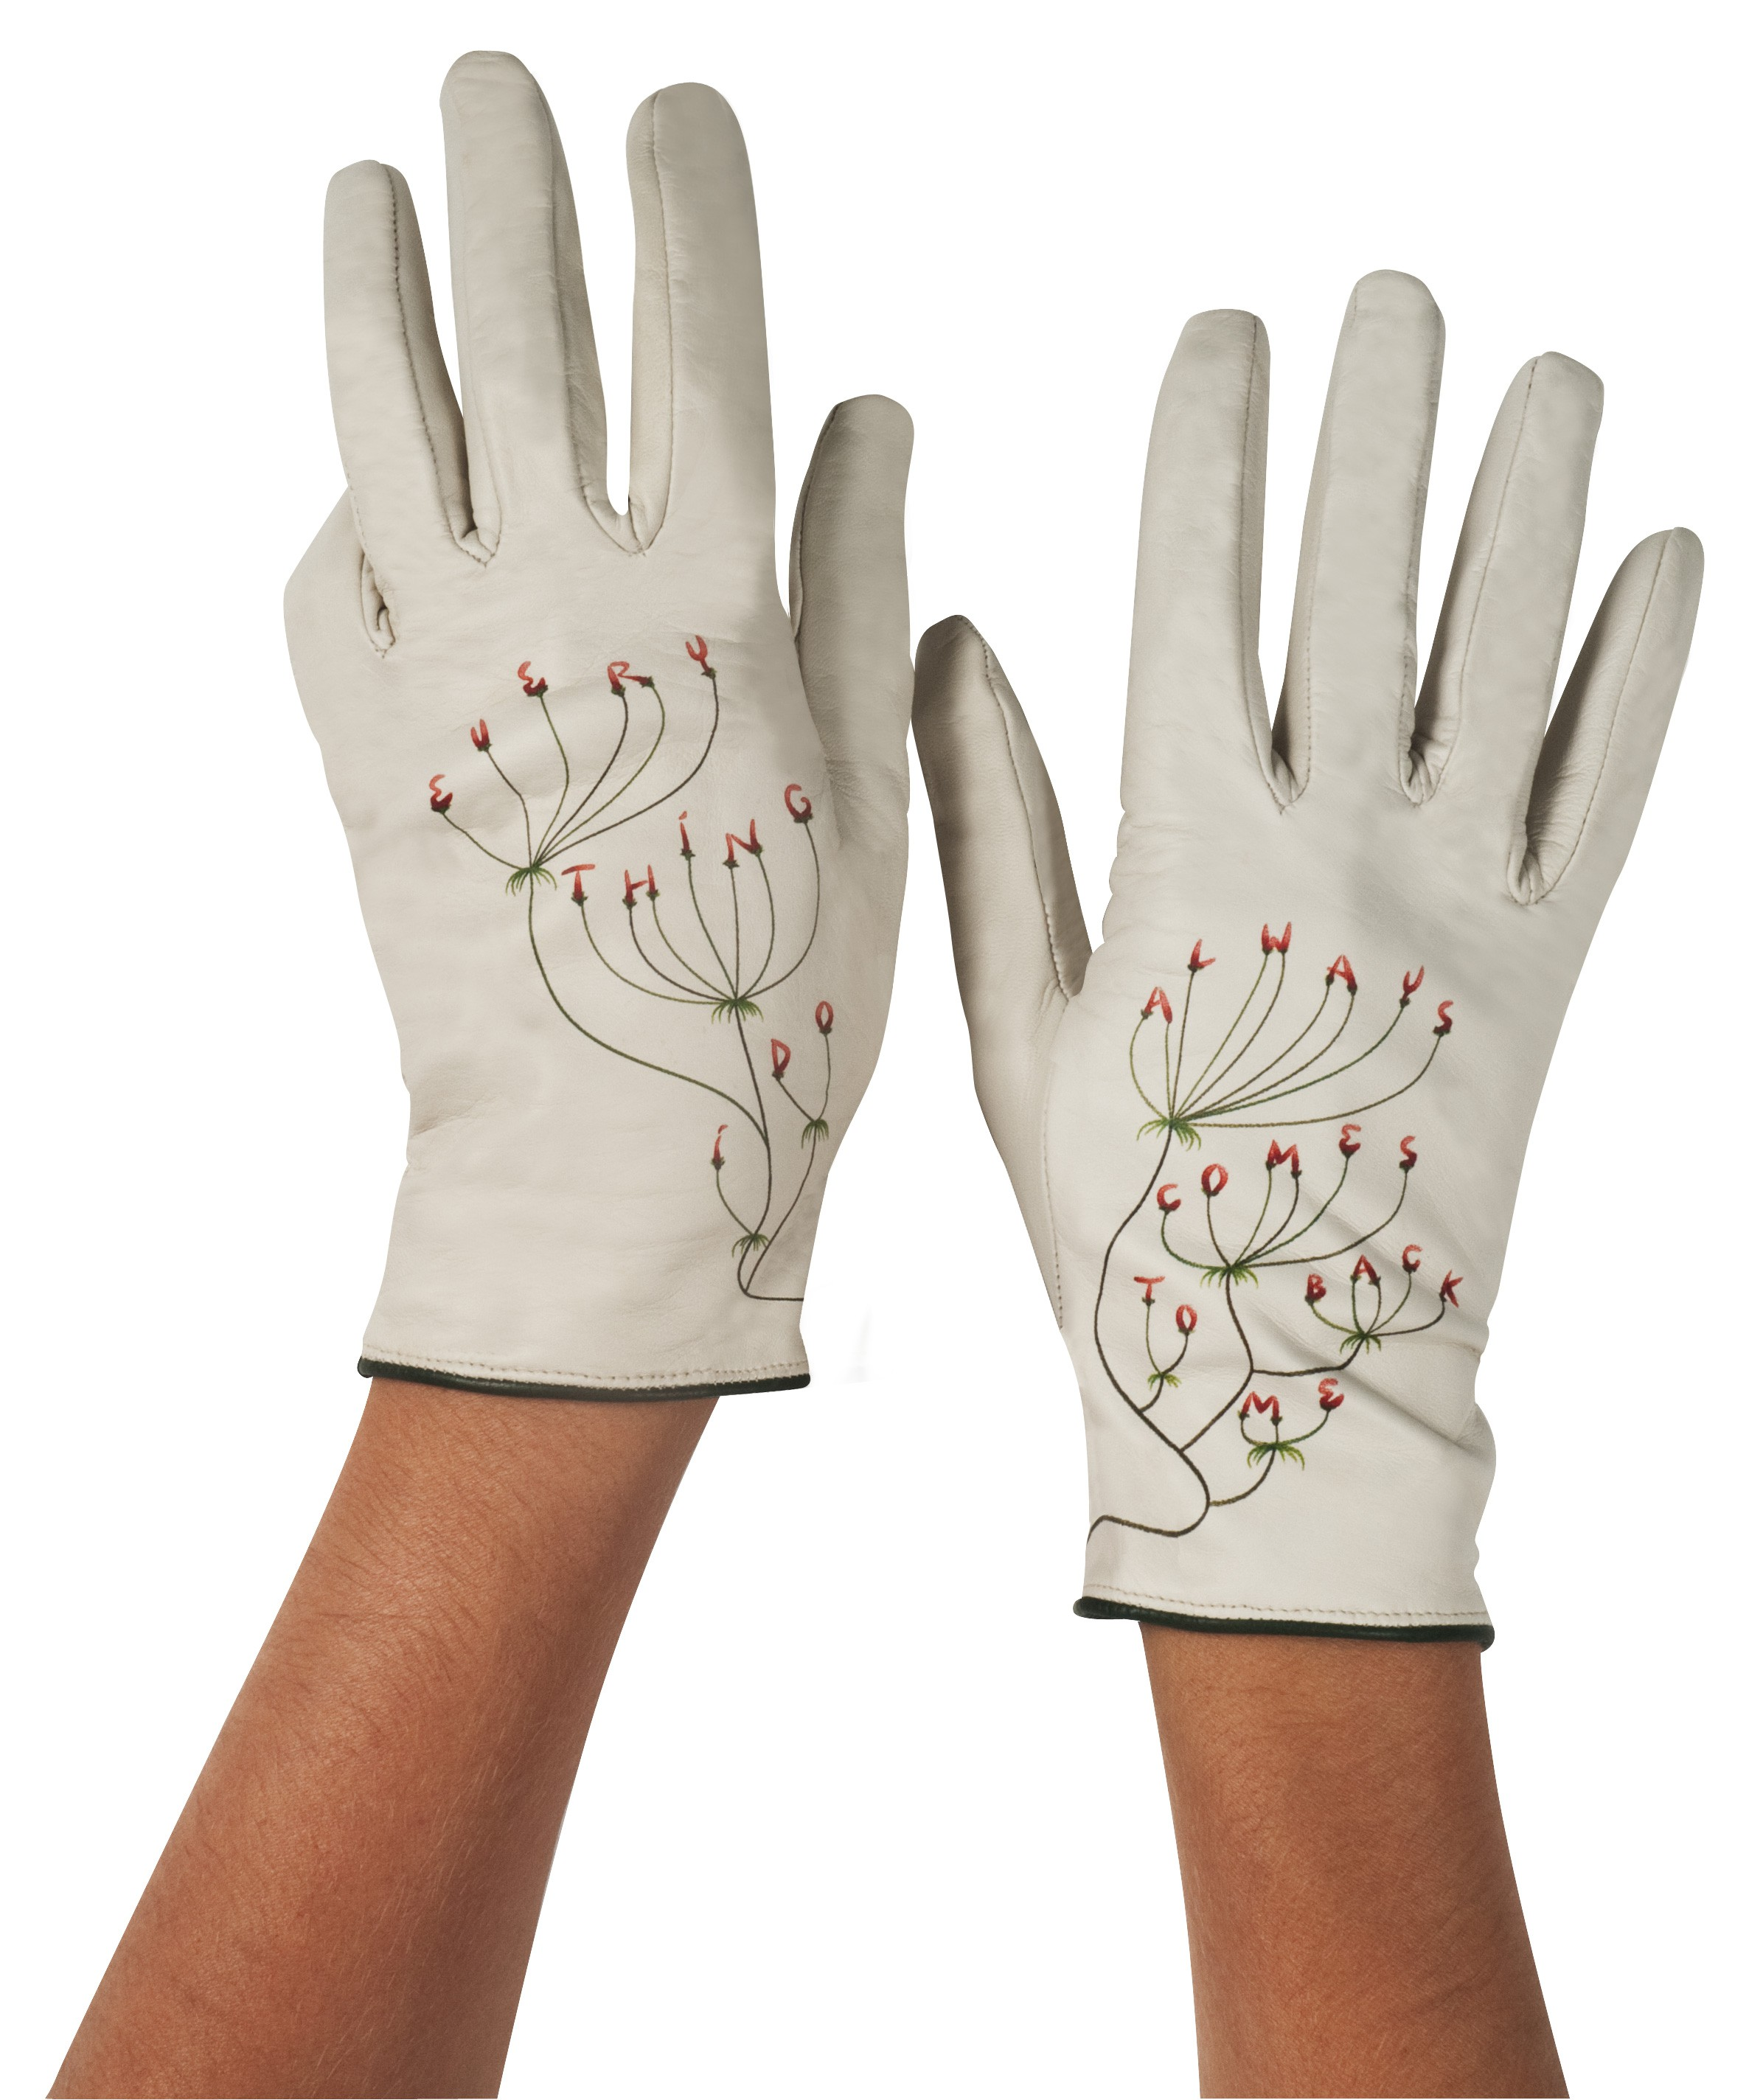 Typographic Gloves